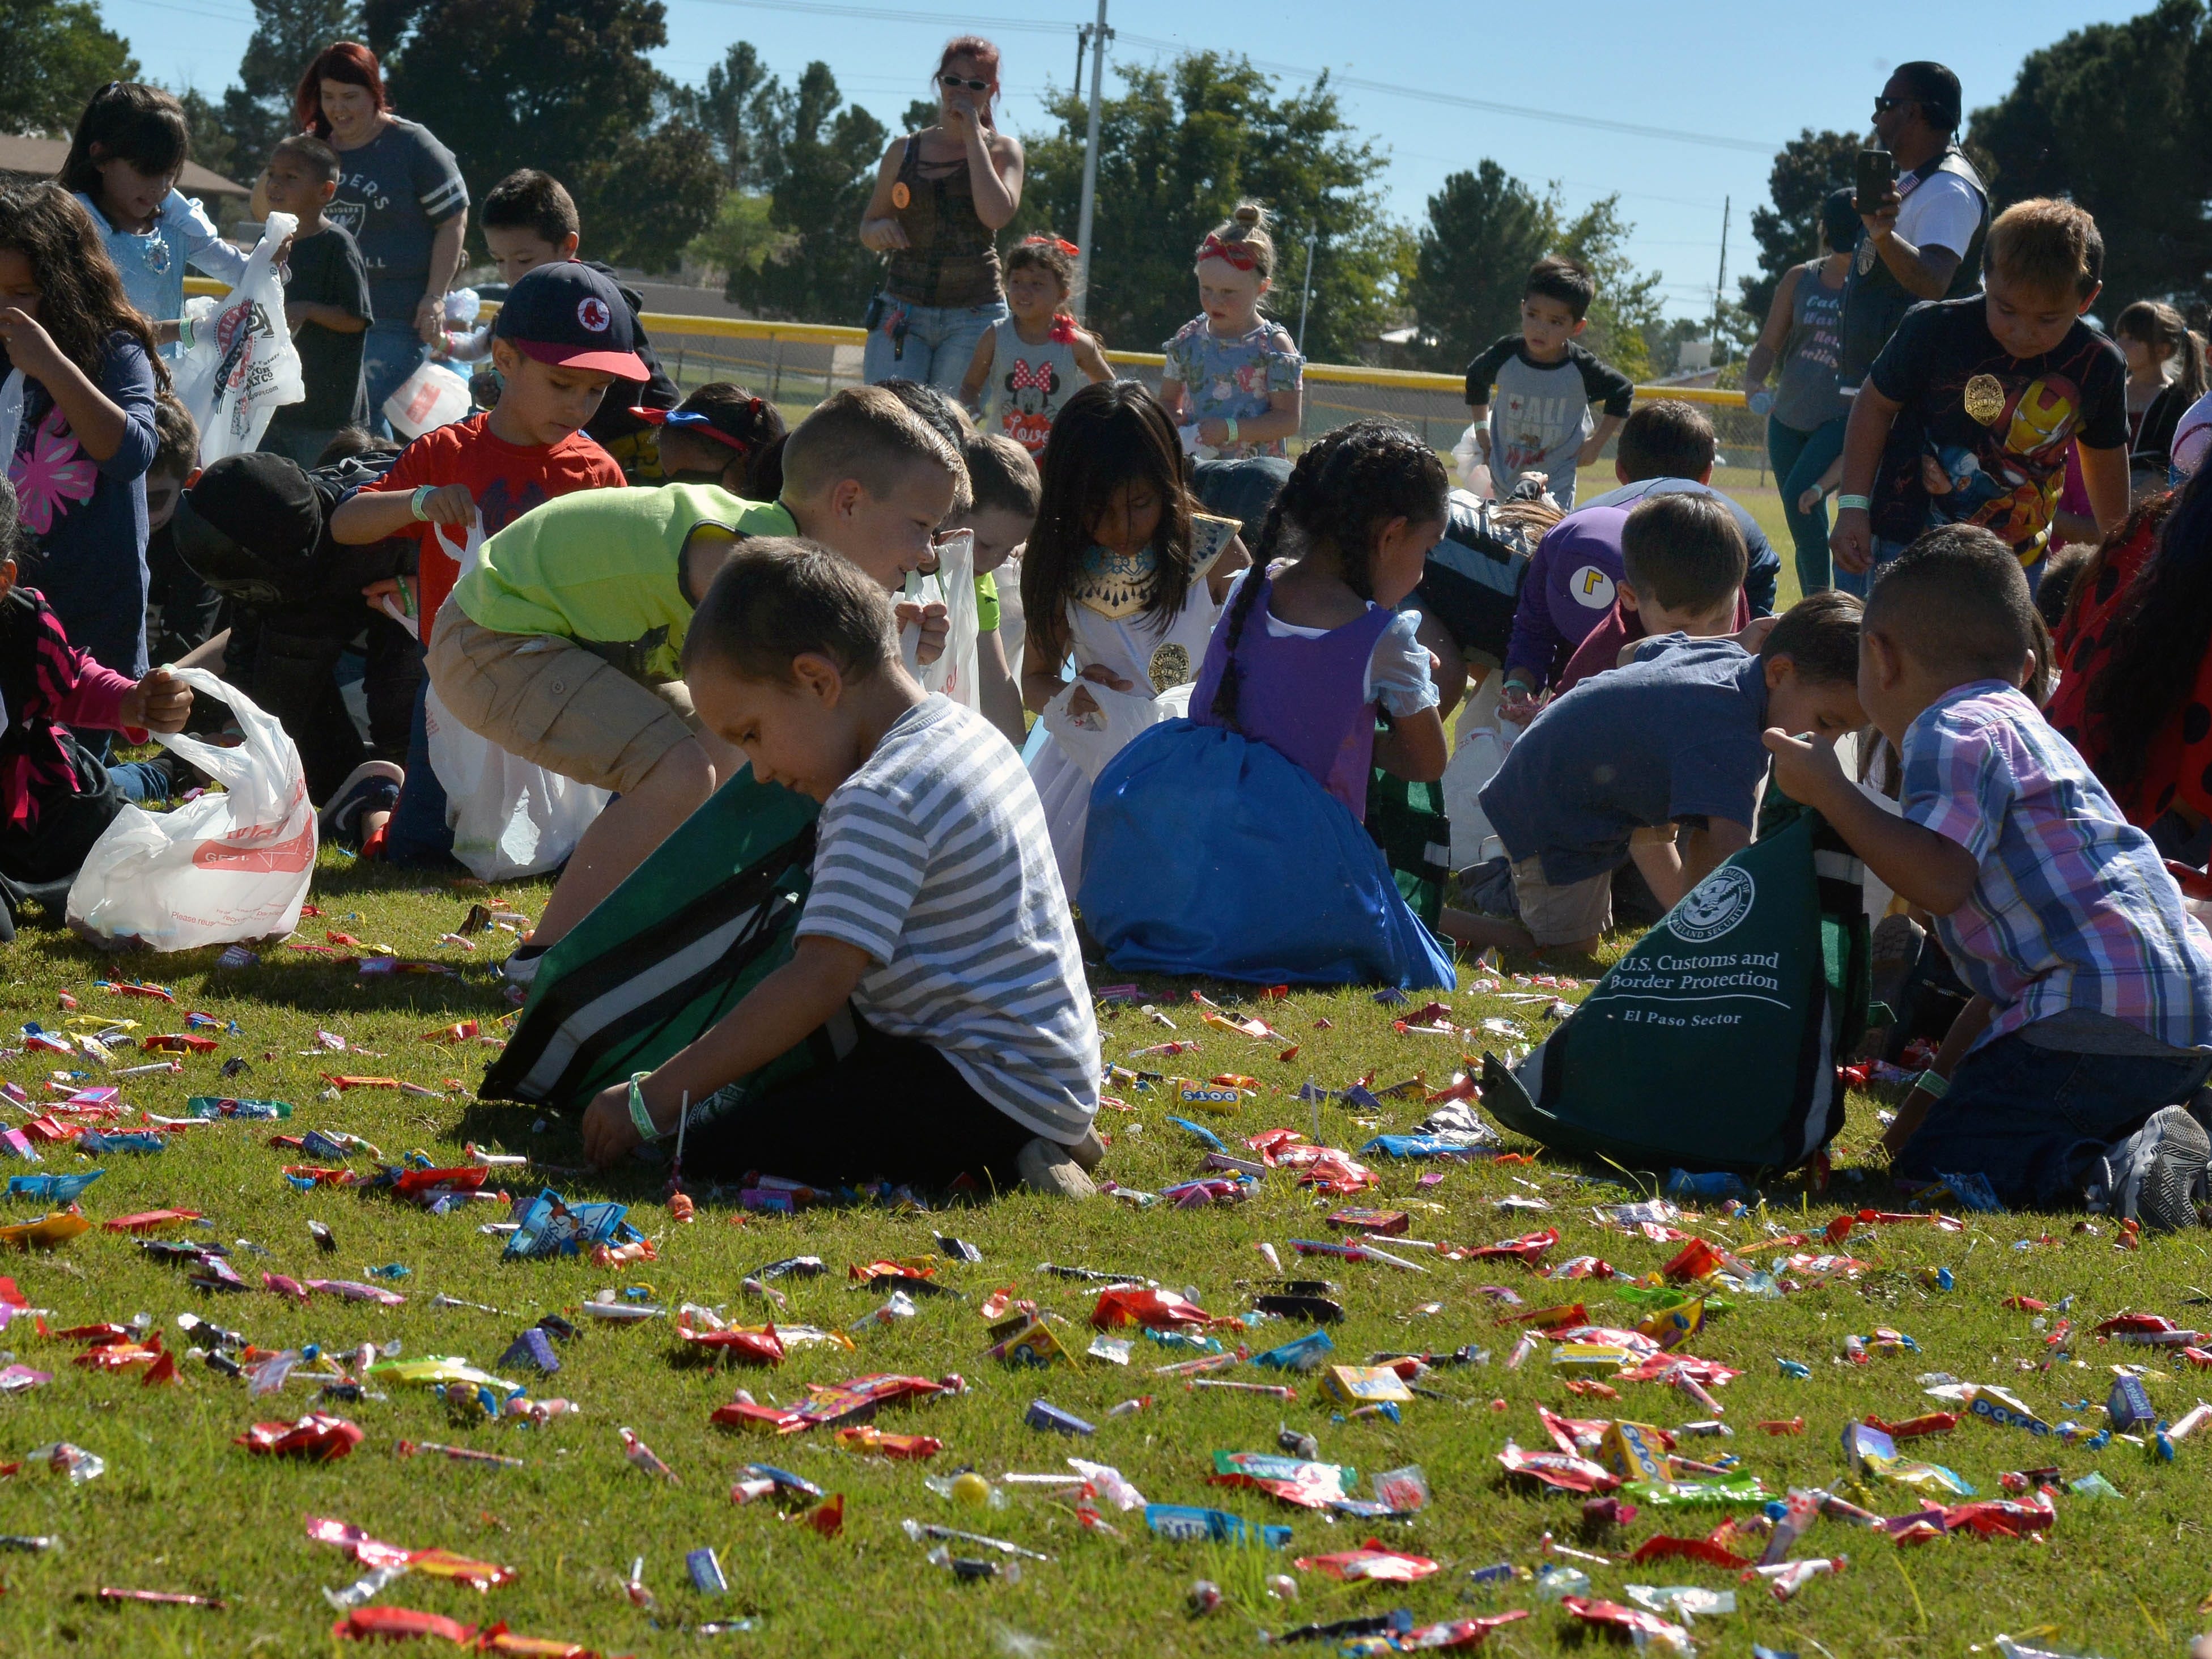 Children fill their bags with candy during the 14th annual Great Pumpkin Candy Drop, held Sunday, Oct, 28 at Maag Park.